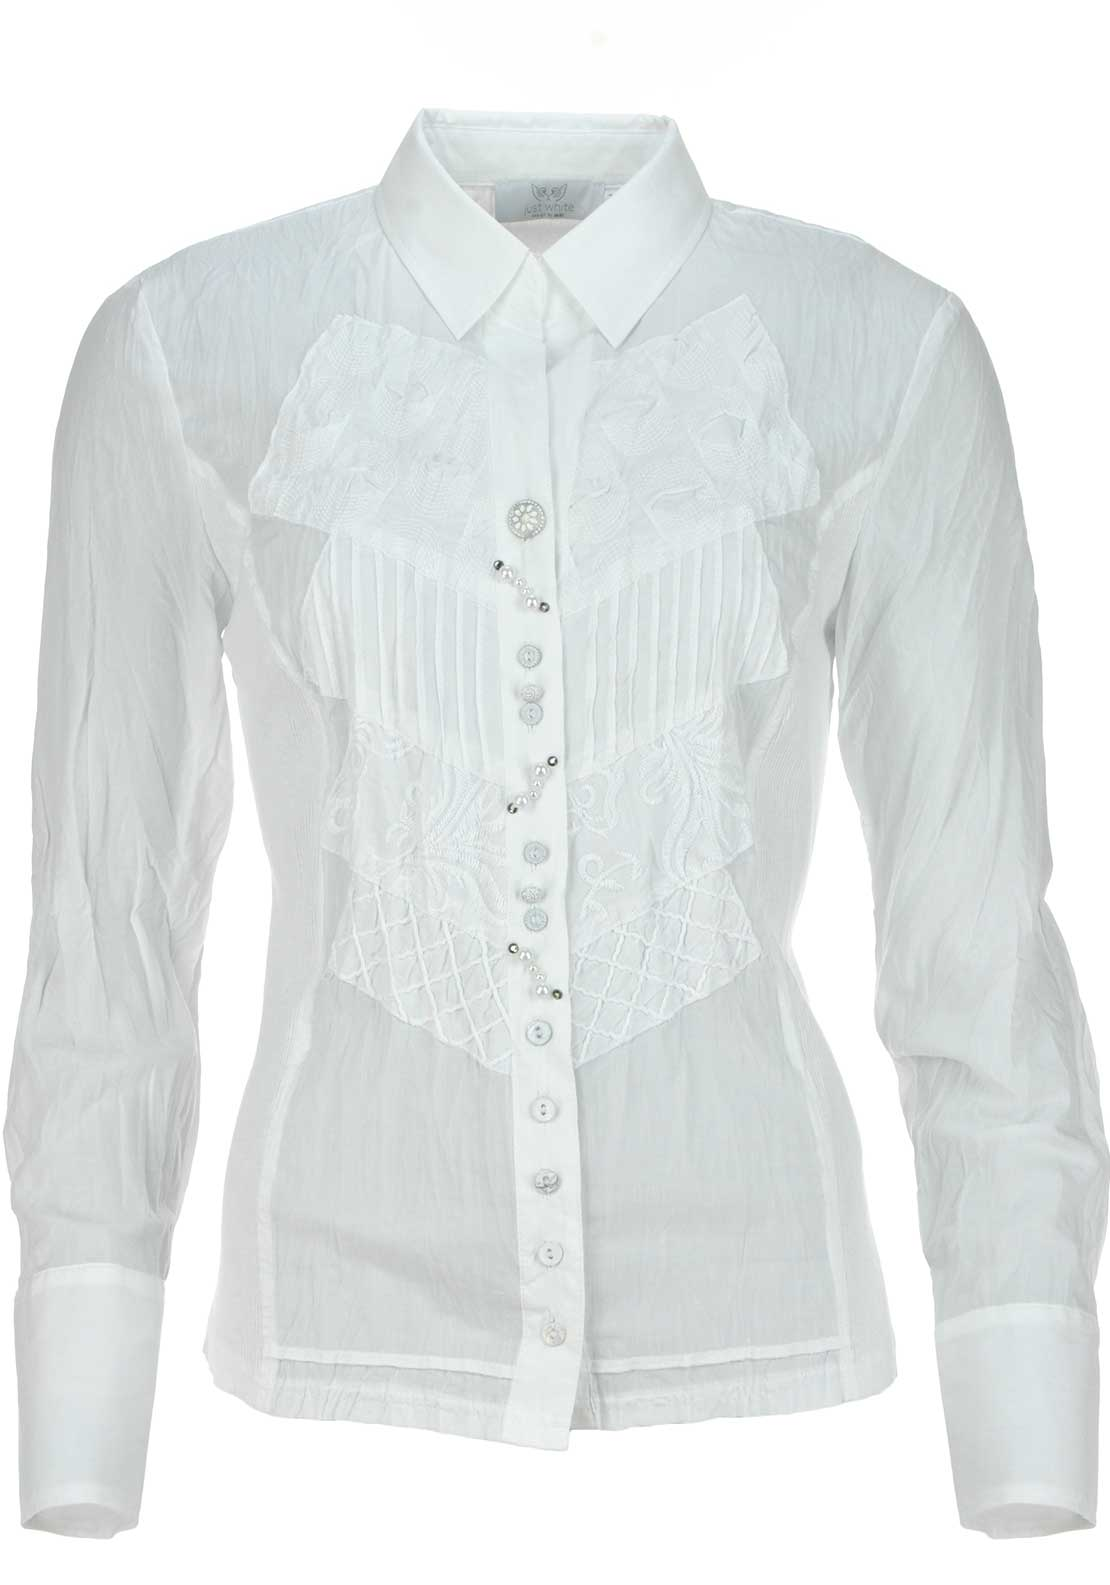 Just White Embroidered Long Sleeve Blouse, White